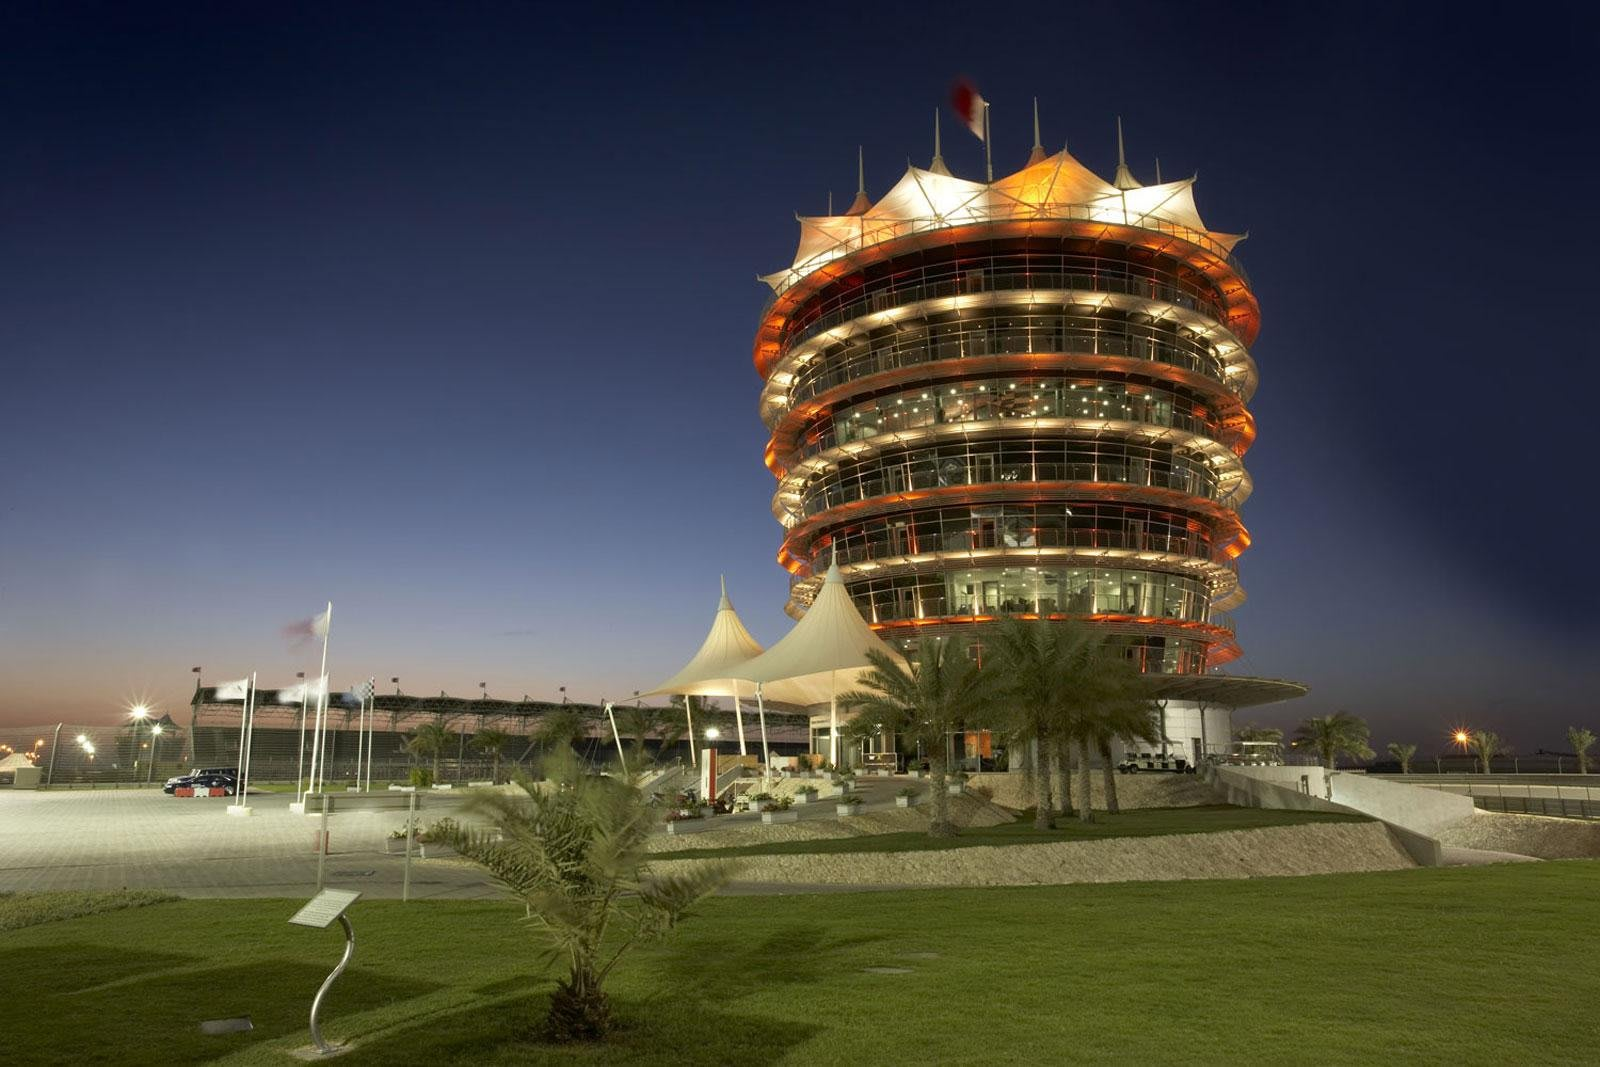 Bahrain international circuit. Destinasi Wisata di Bahrain